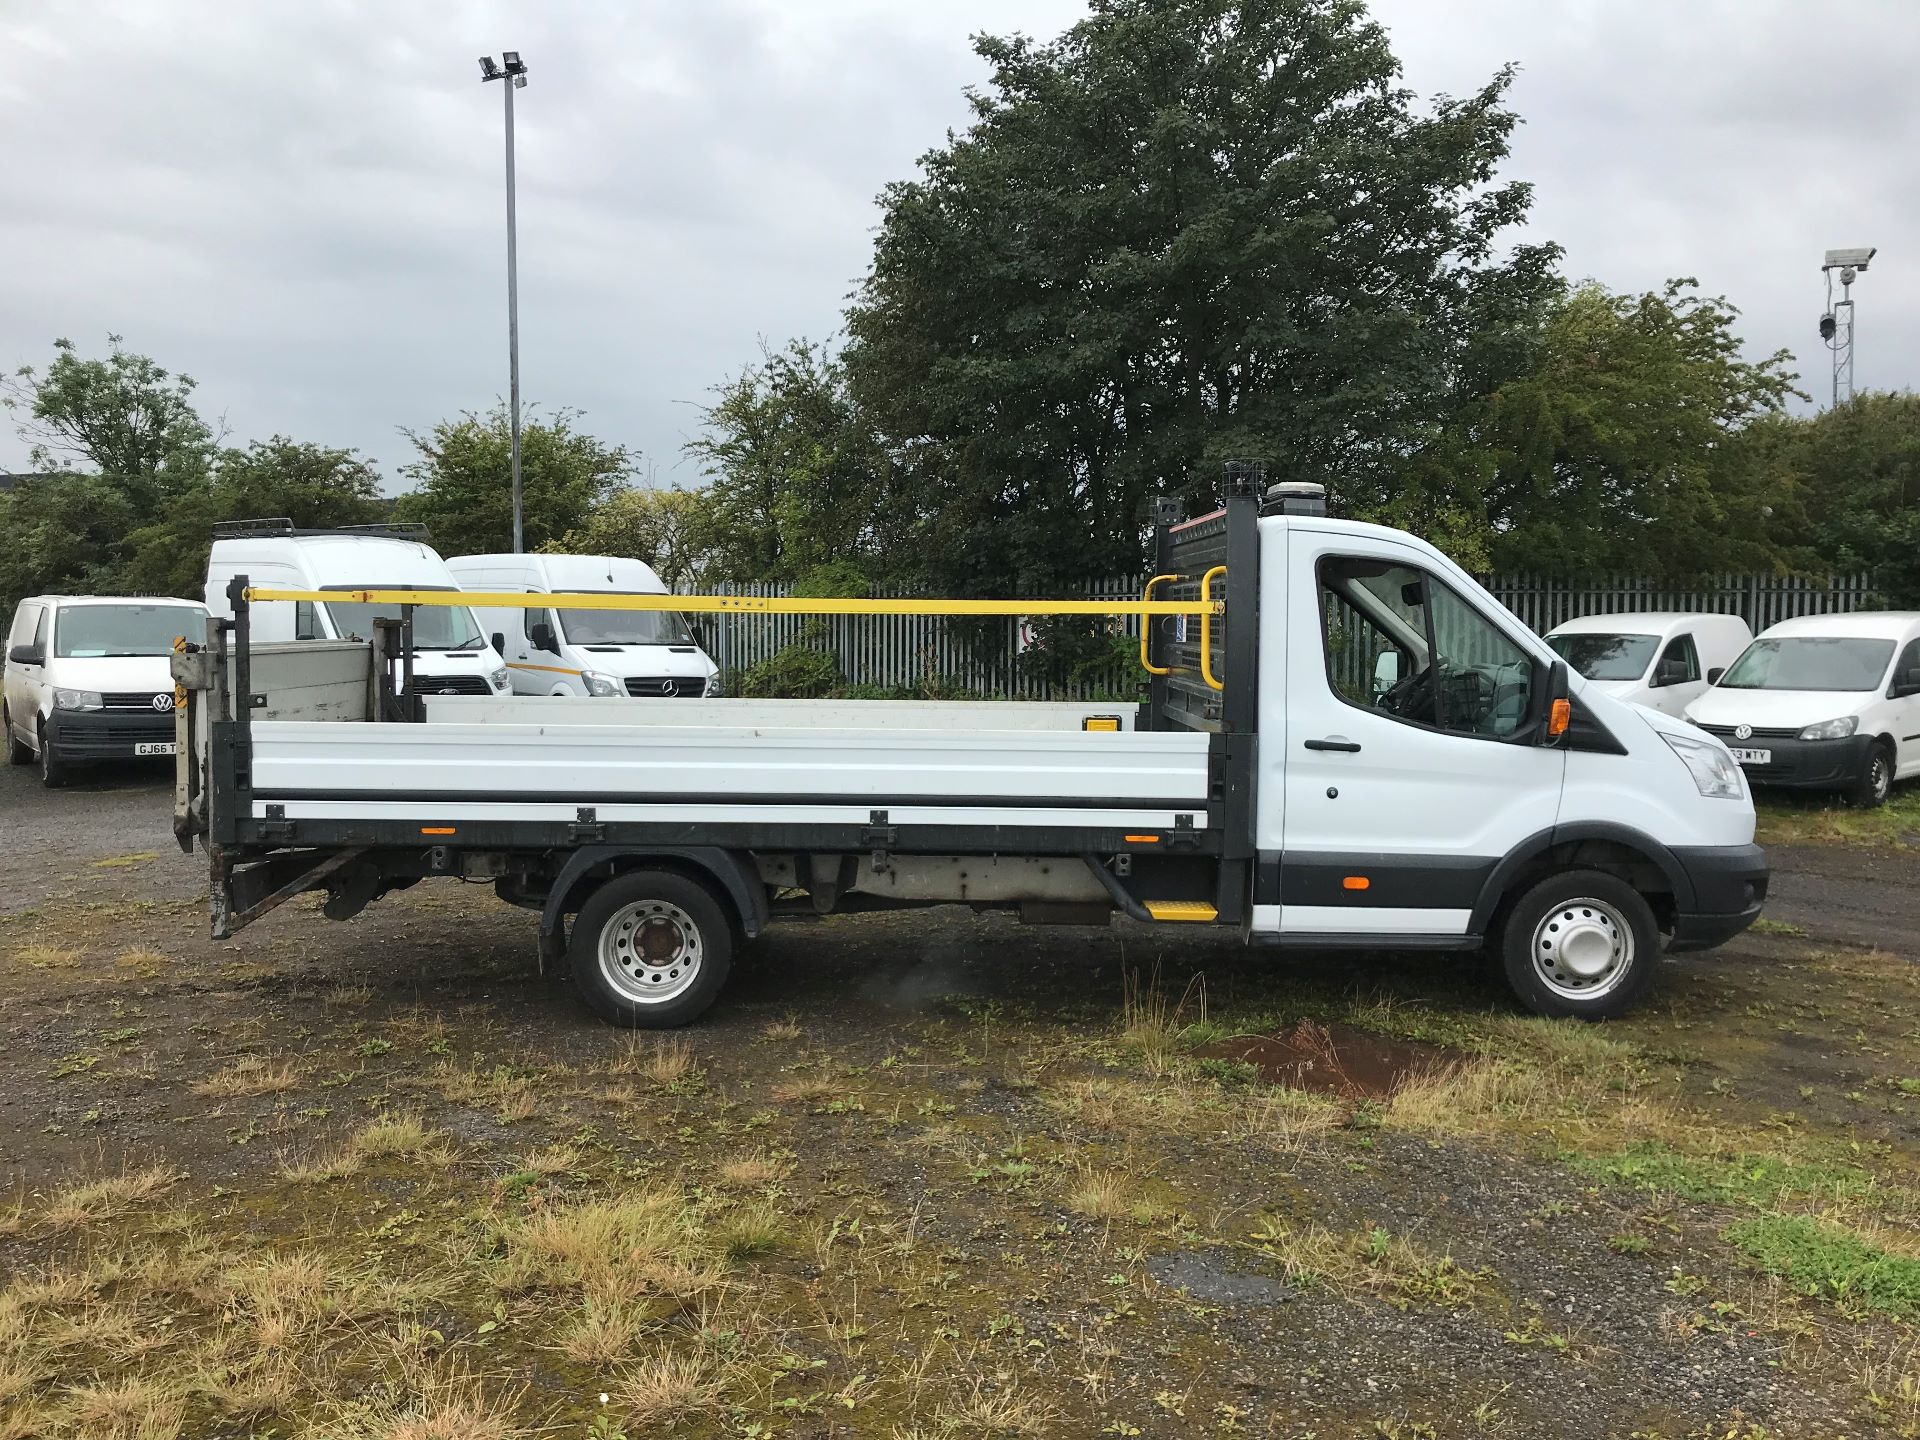 2016 Ford Transit 2.2 Tdci 125Ps Heavy Duty Chassis Cab *VALUE RANGE VEHICLE CONDITION REFLECTED IN PRICE*  (YS66SOE) Image 8